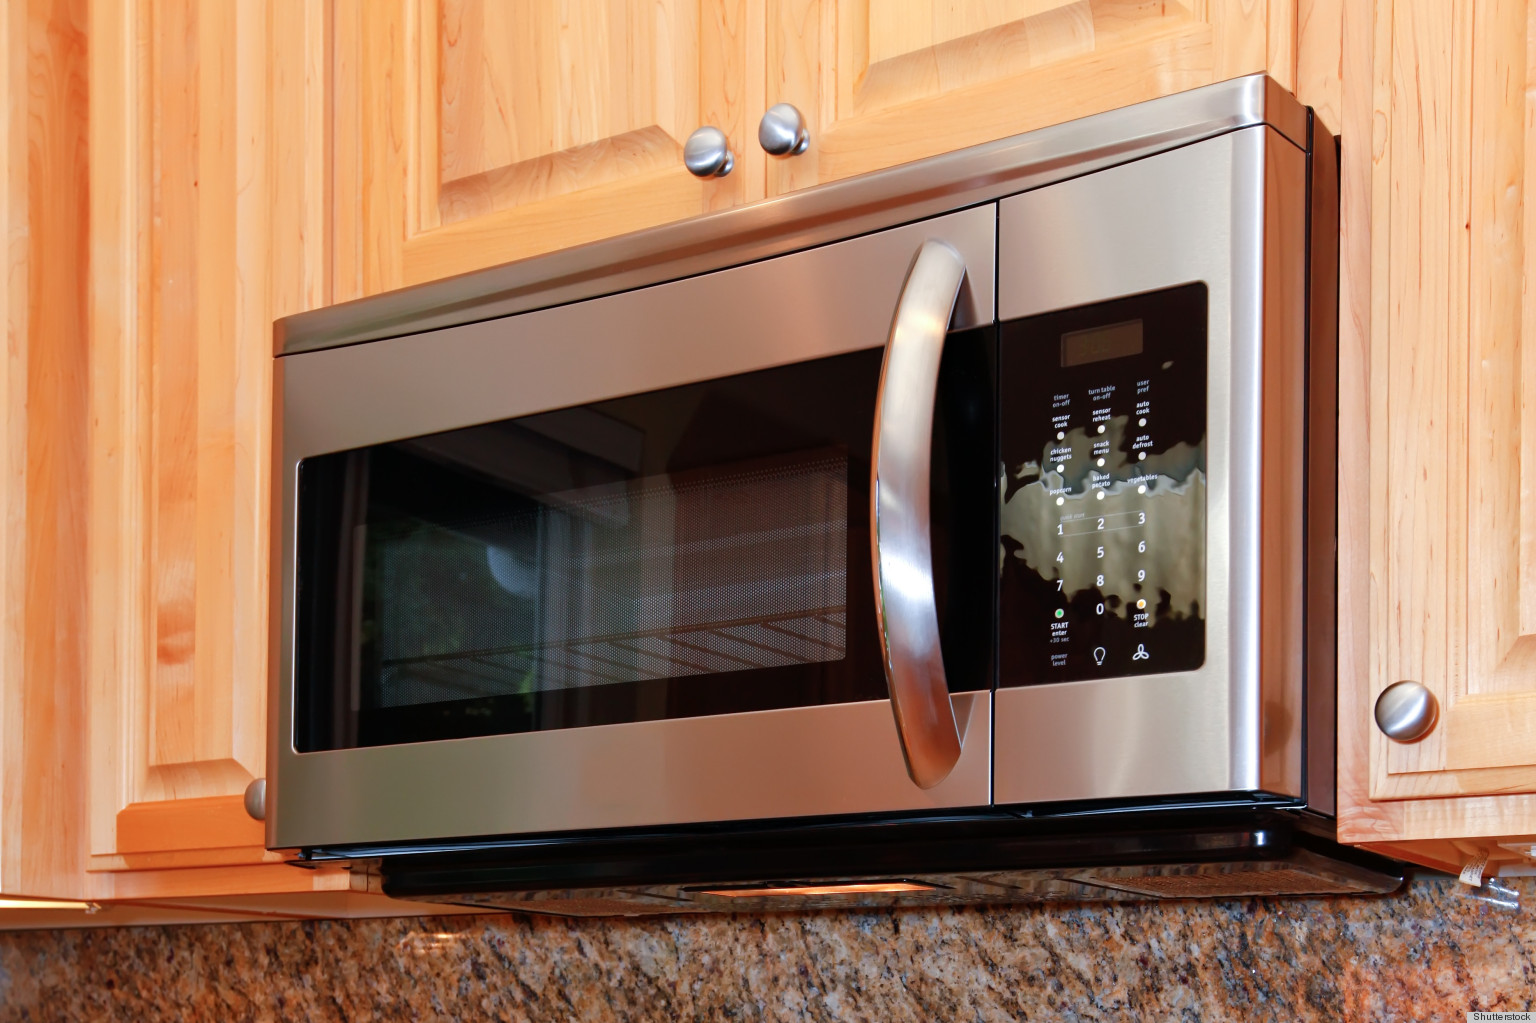 Smart Microwave Cleaning Tip Using A Coffee Filter